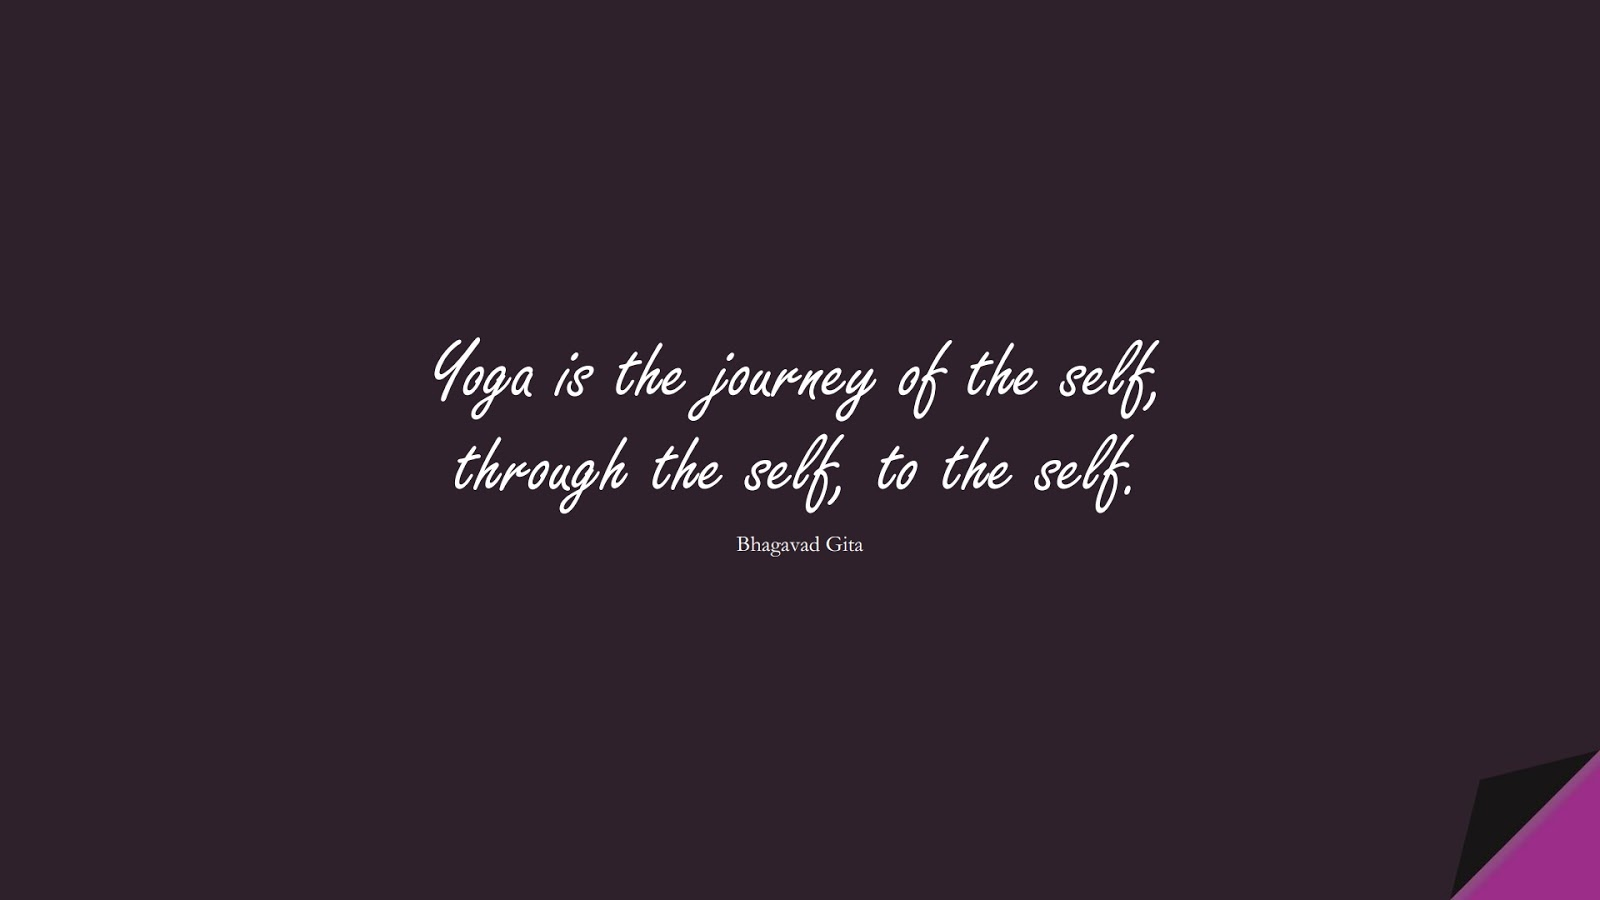 Yoga is the journey of the self, through the self, to the self. (Bhagavad Gita);  #HealthQuotes